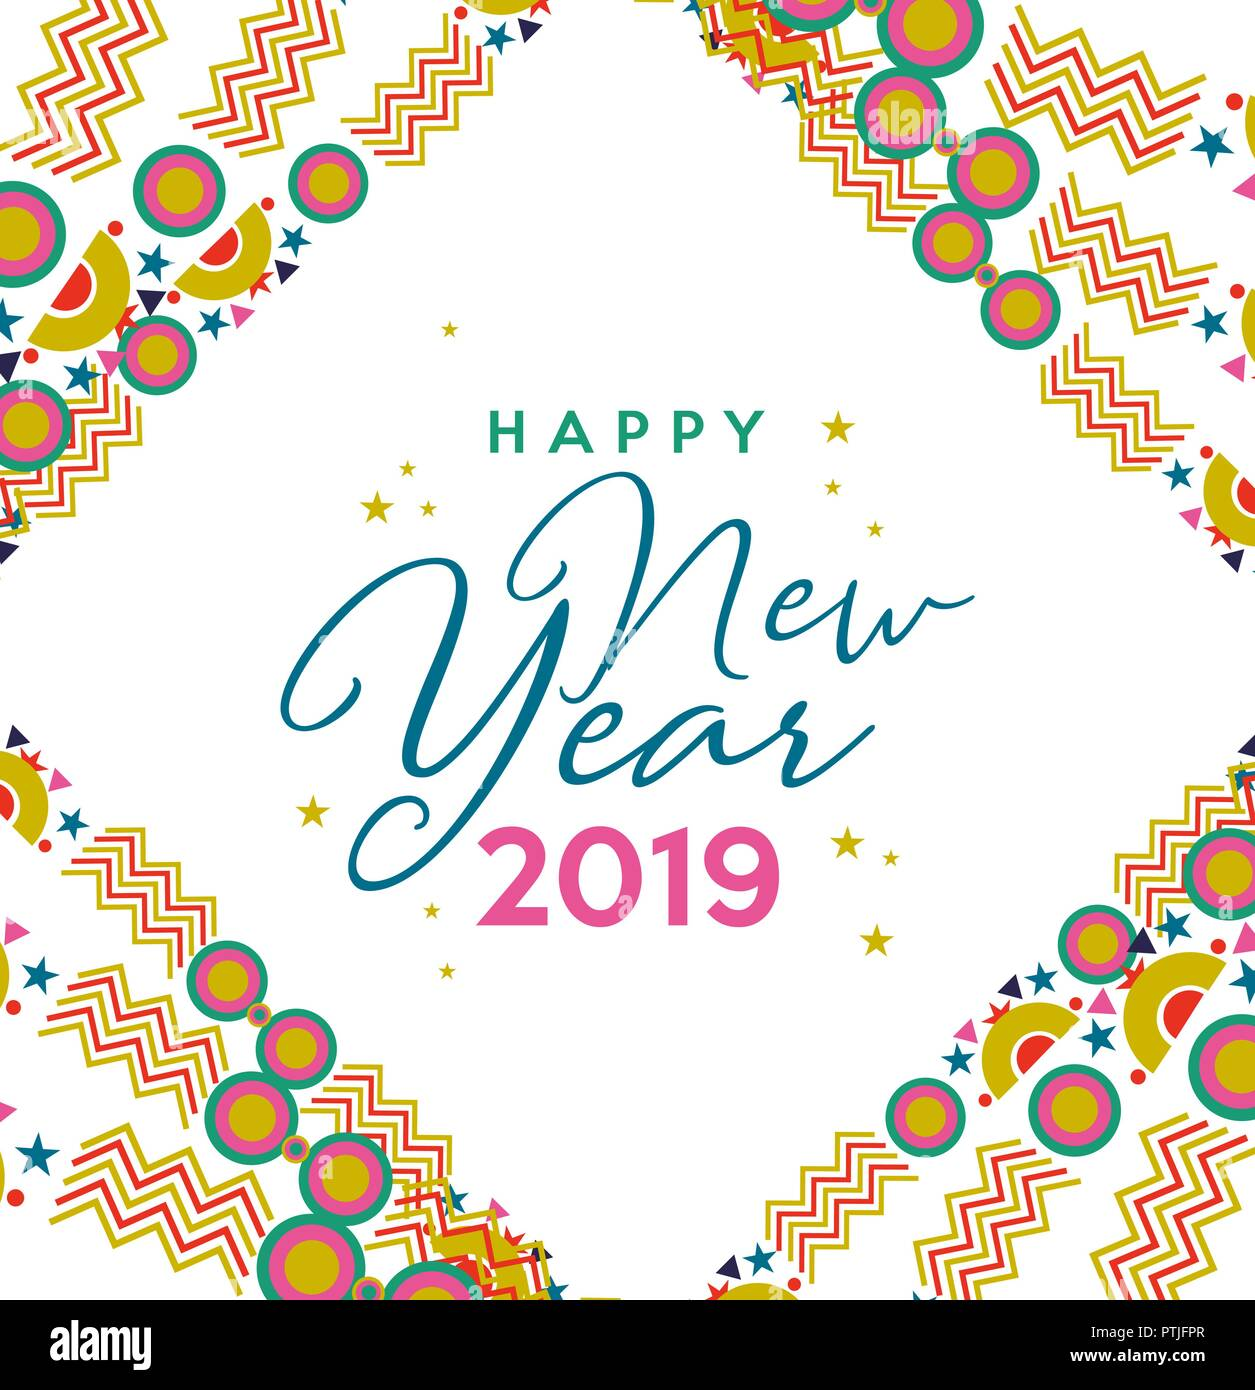 Happy new year 2019 holiday greeting card illustration - New year 2019 color ...